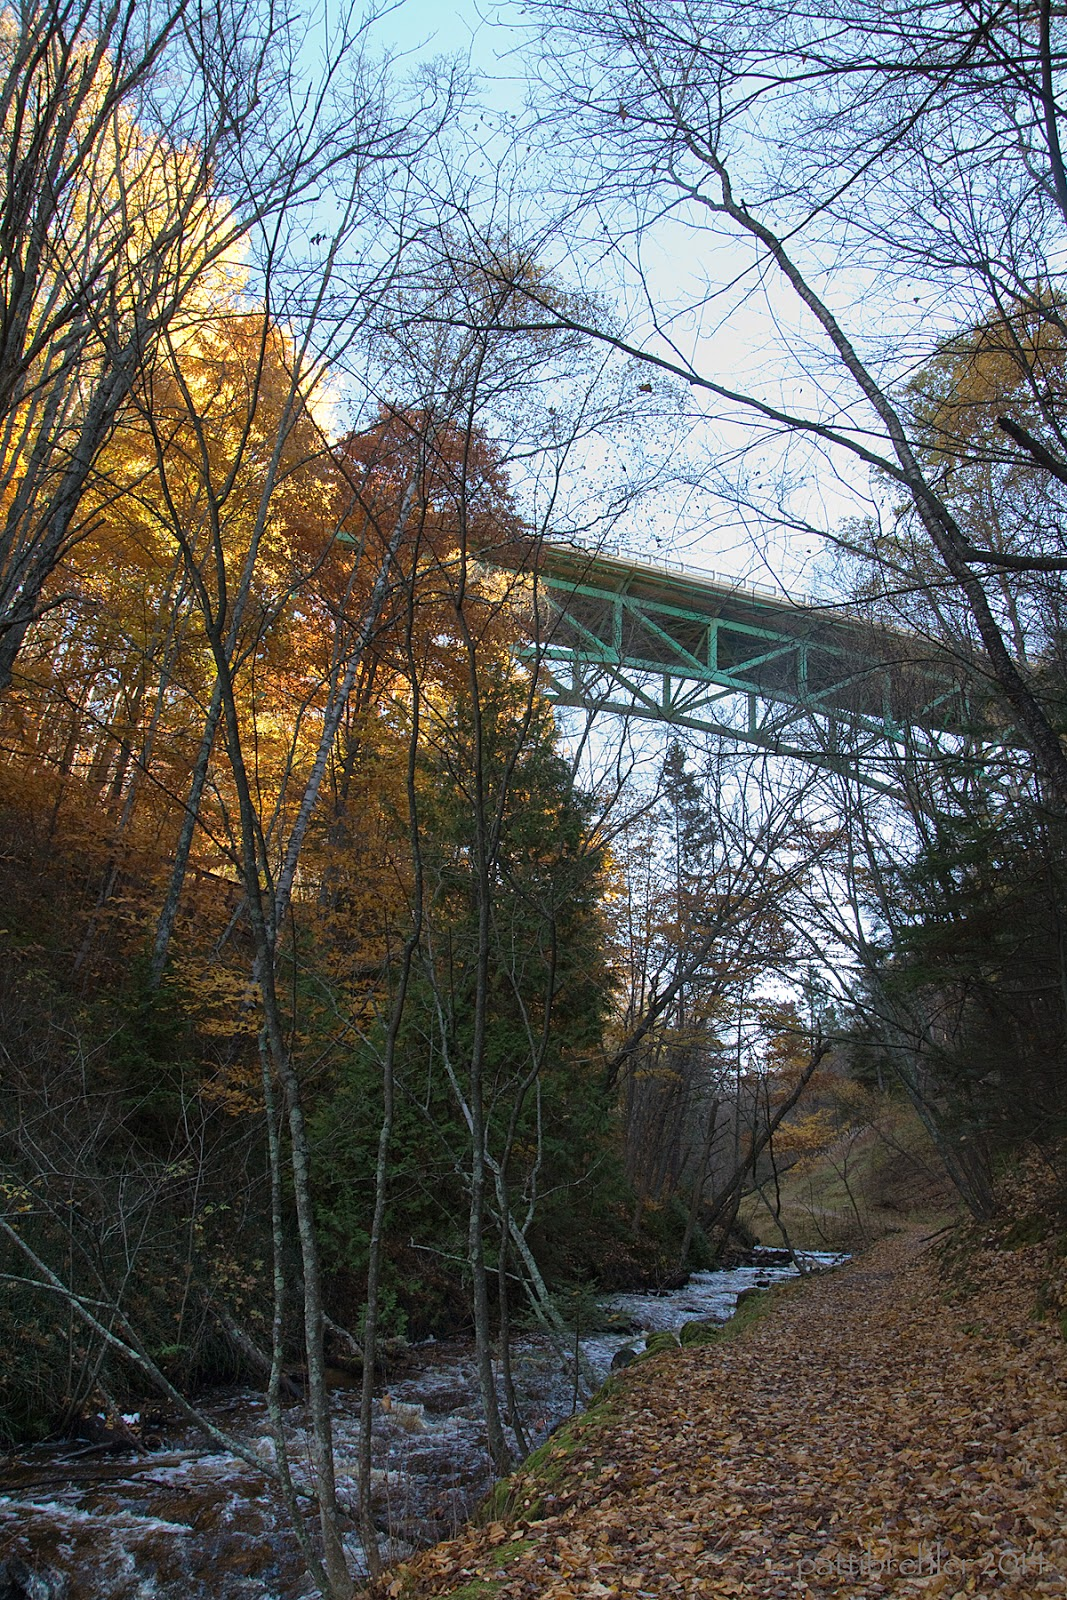 A scenic shot of a small rushing river with a leaf-covered trail on the right side. Colorful trees line the far side of the river and trees already bear lean over from the right. In the distance with a blue sky behind it, is the green trusses of the Cut River Bridge, high above the river.